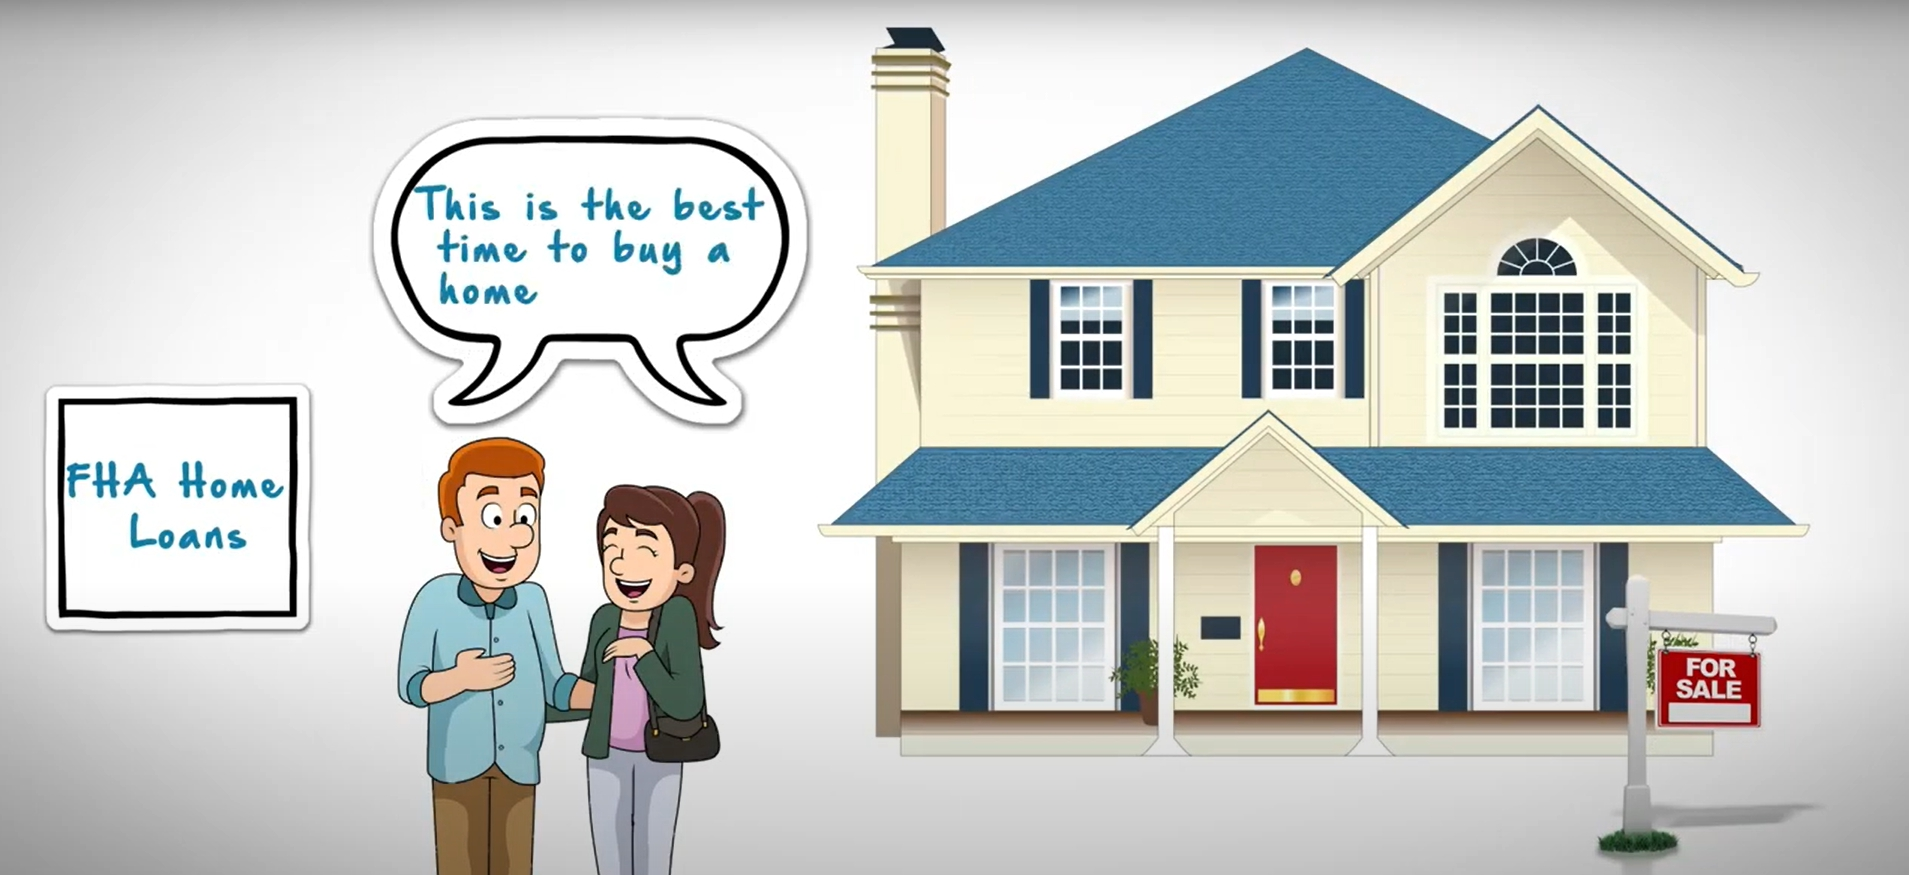 FHA Home Loans For First Time Home Buyers